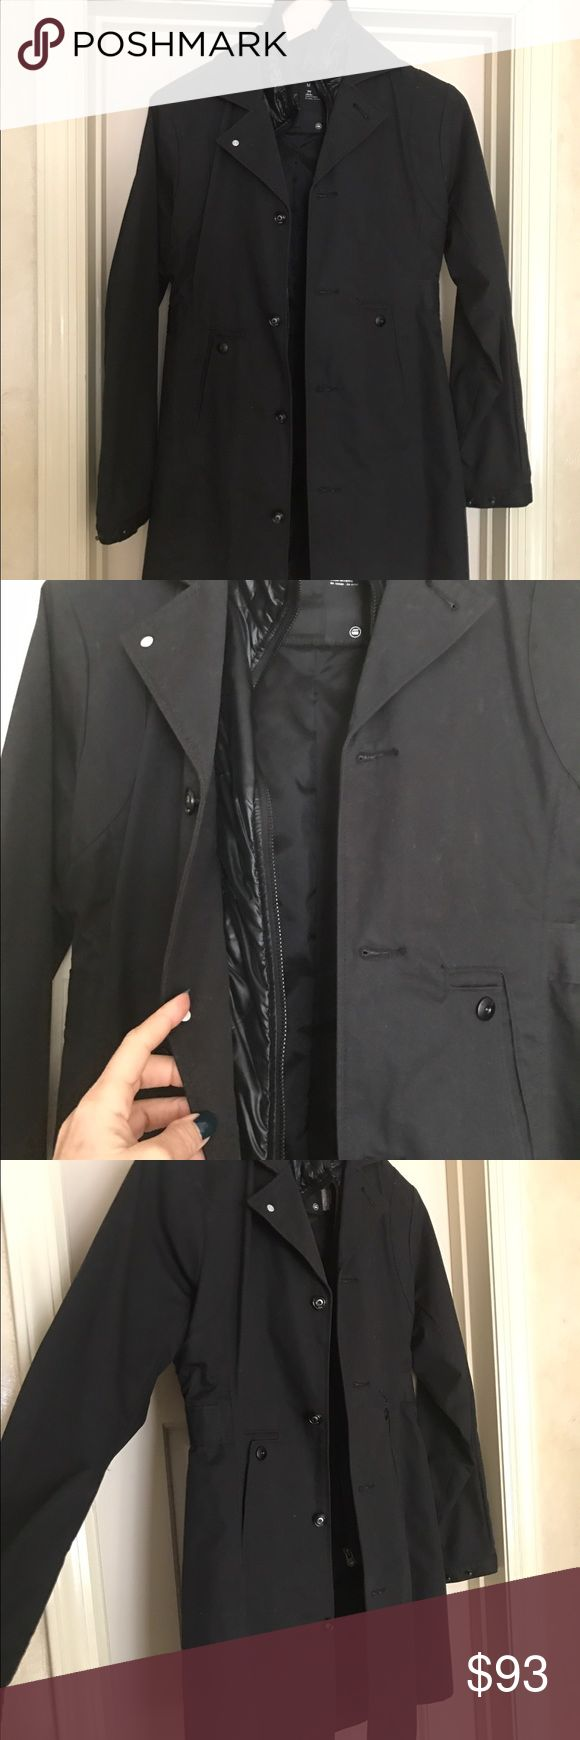 G Star Raw Woman's black 3/4 Trench Coat Perfect!! Excellently constructed!! Zippered inside...button Outside ..2 front pockets... Jackets & Coats Trench Coats